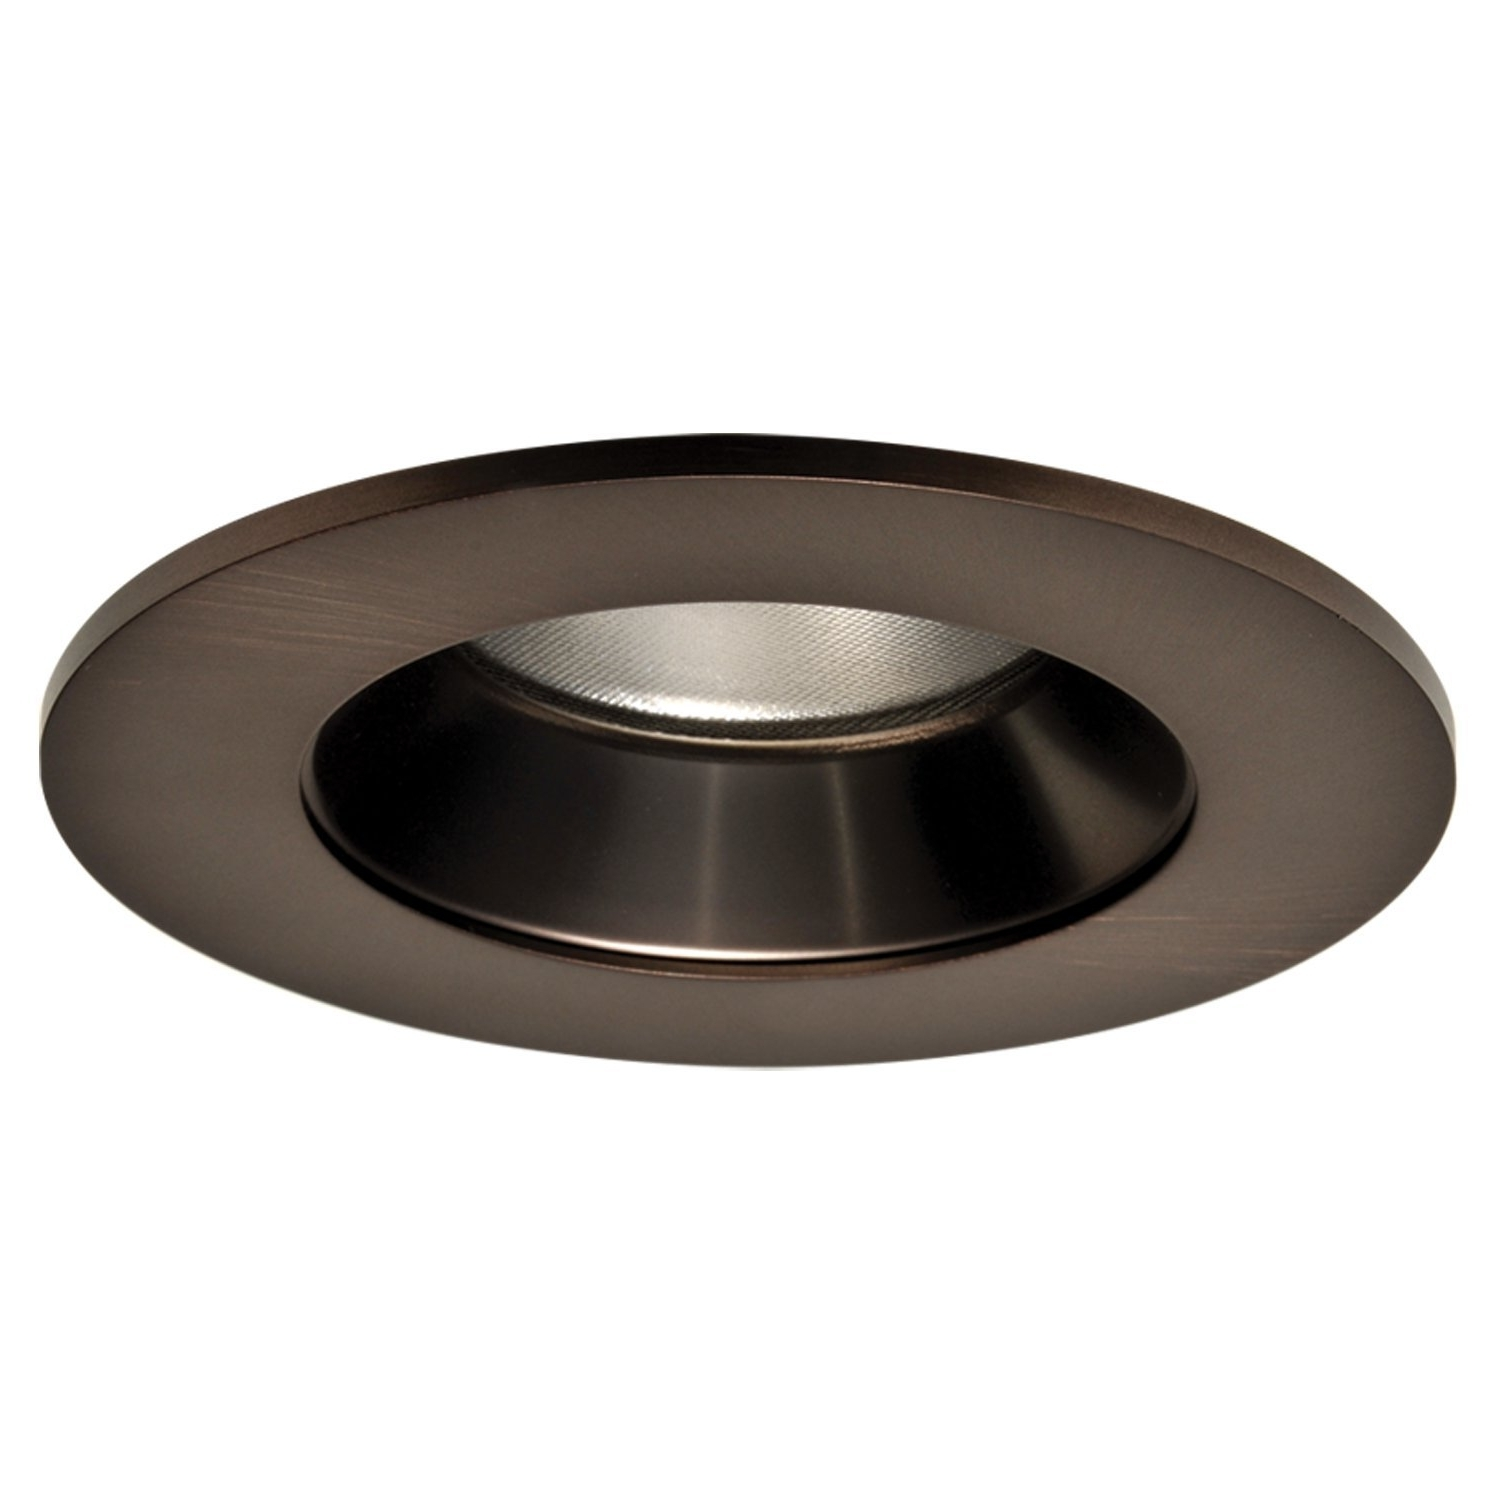 Widely Used Outdoor Recessed Ceiling Lights With Regard To Lighting : Recessed Wall Light Fixture Led Linear Outdoor Step Simes (View 20 of 20)